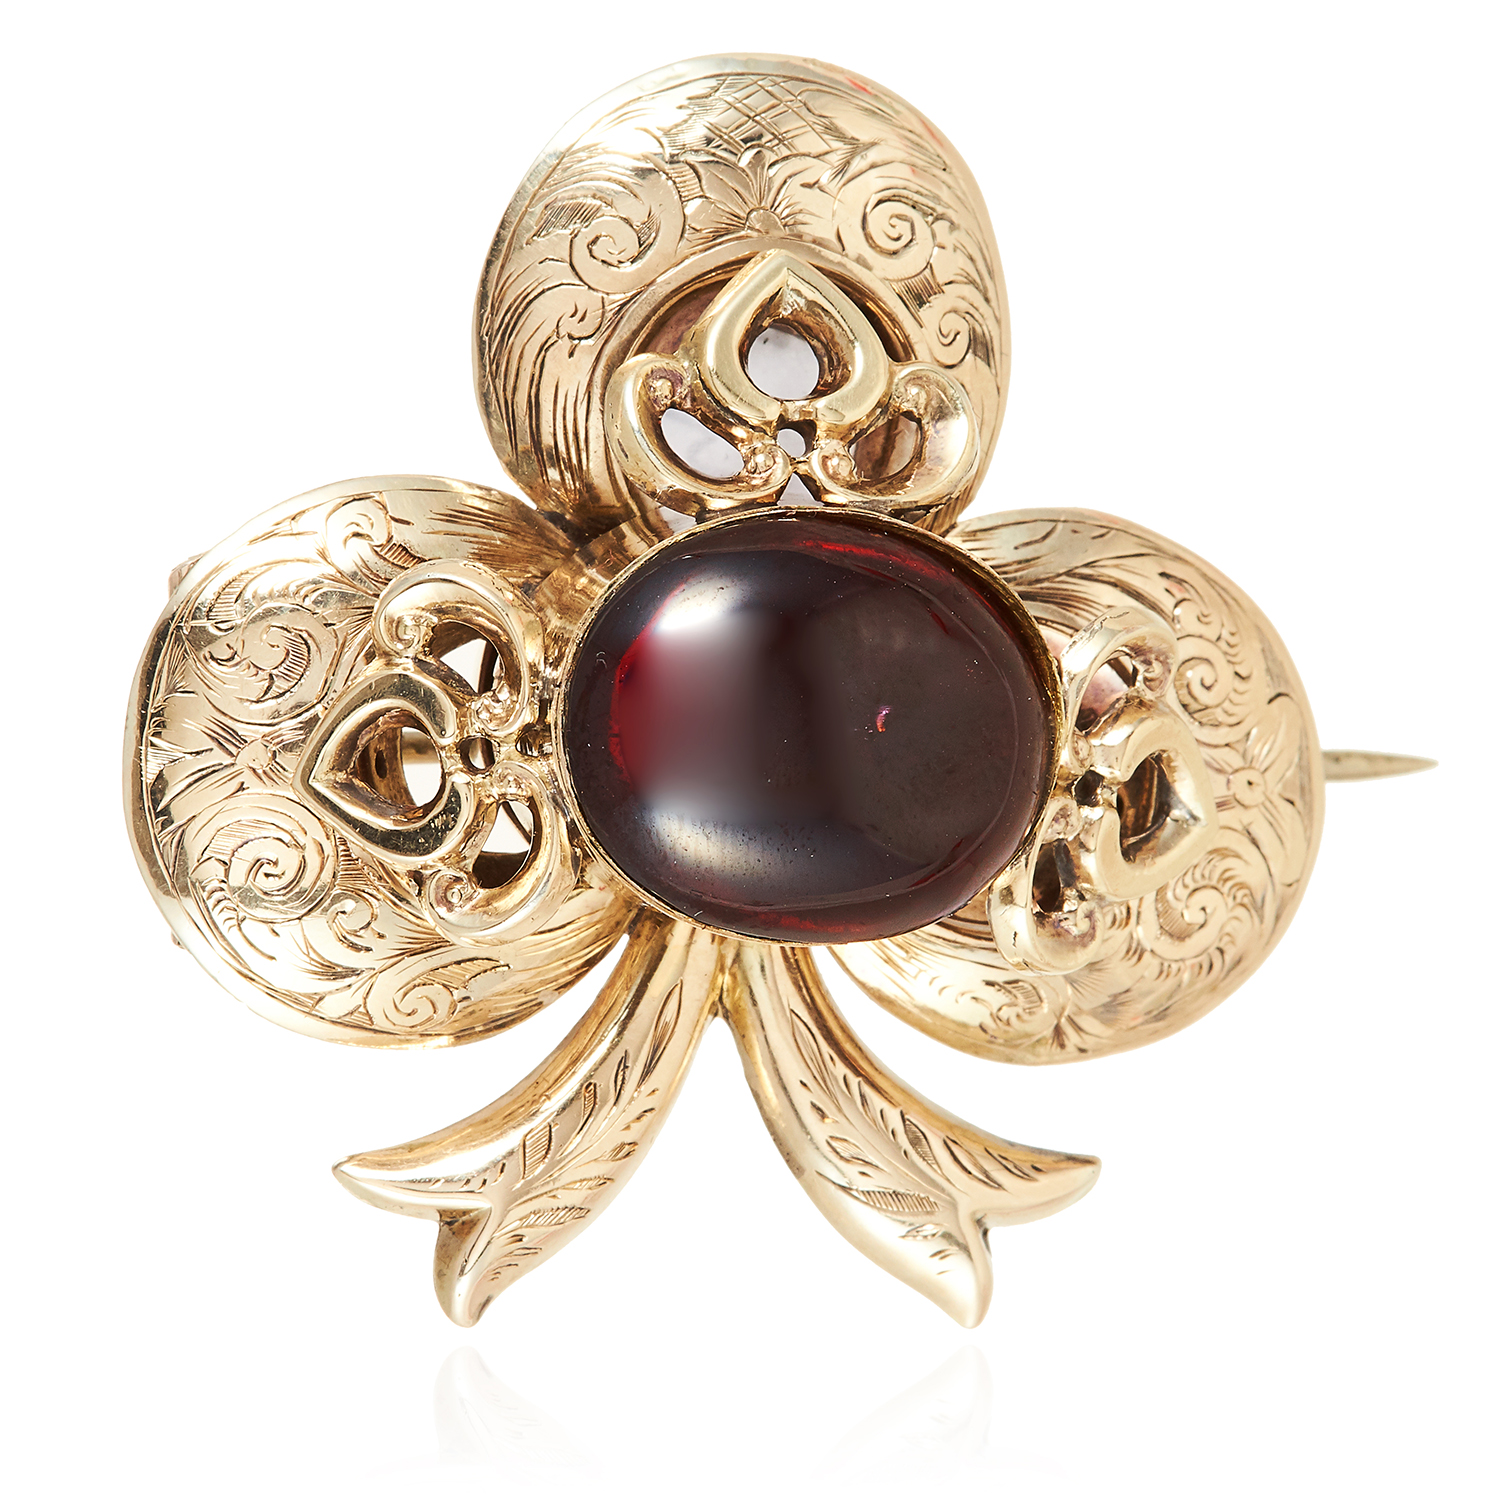 AN ANTIQUE GARNET AND HAIRWORK CLOVER MOURNING BROOCH in high carat yellow gold, the trefoil